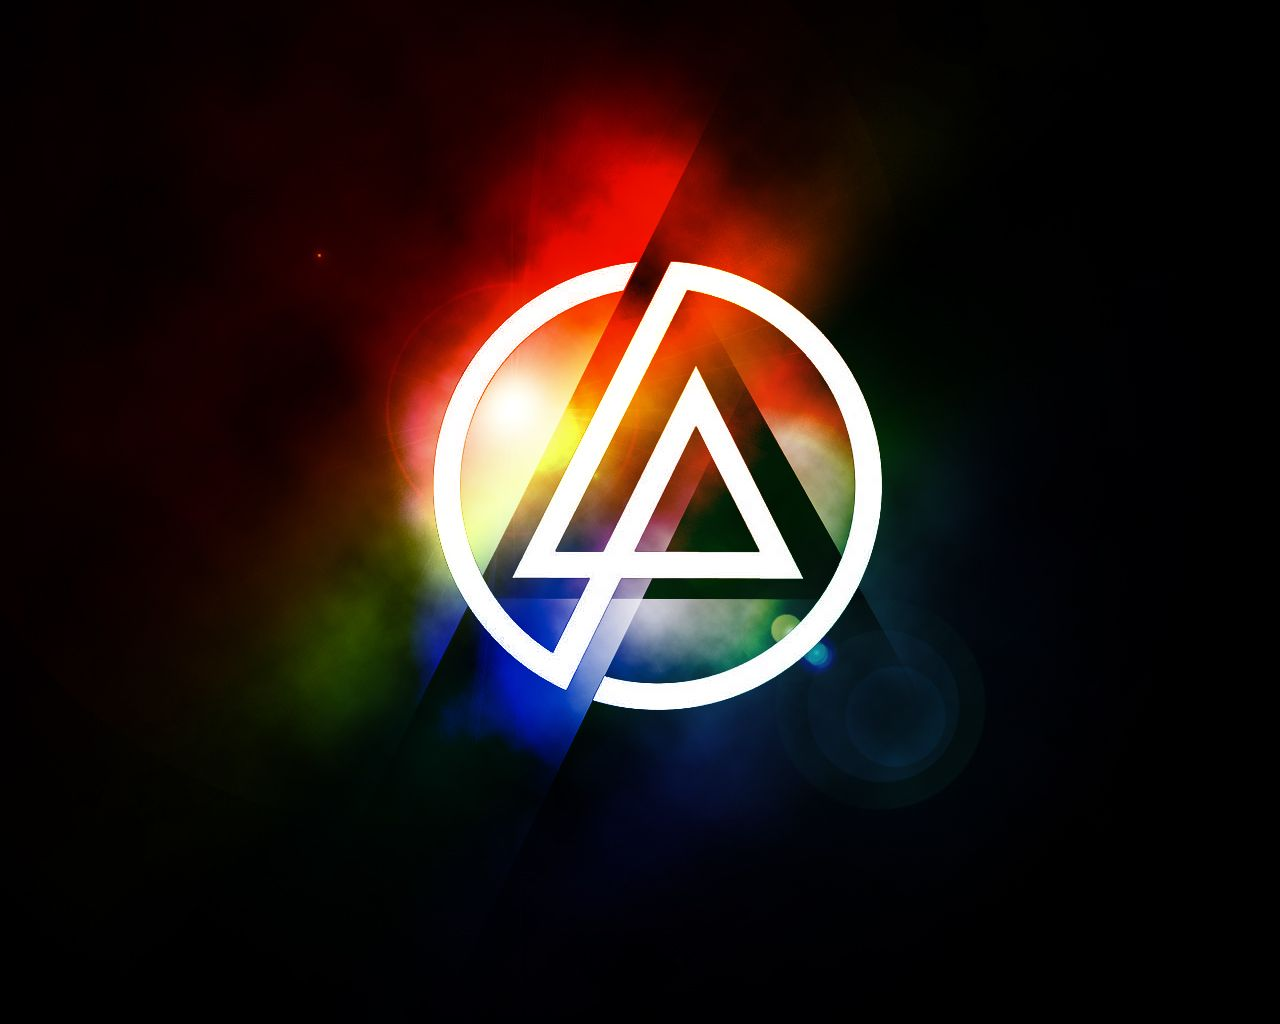 Linkin Park Wallpaper Linkin Park Wallpaper Linkin Park Linkin